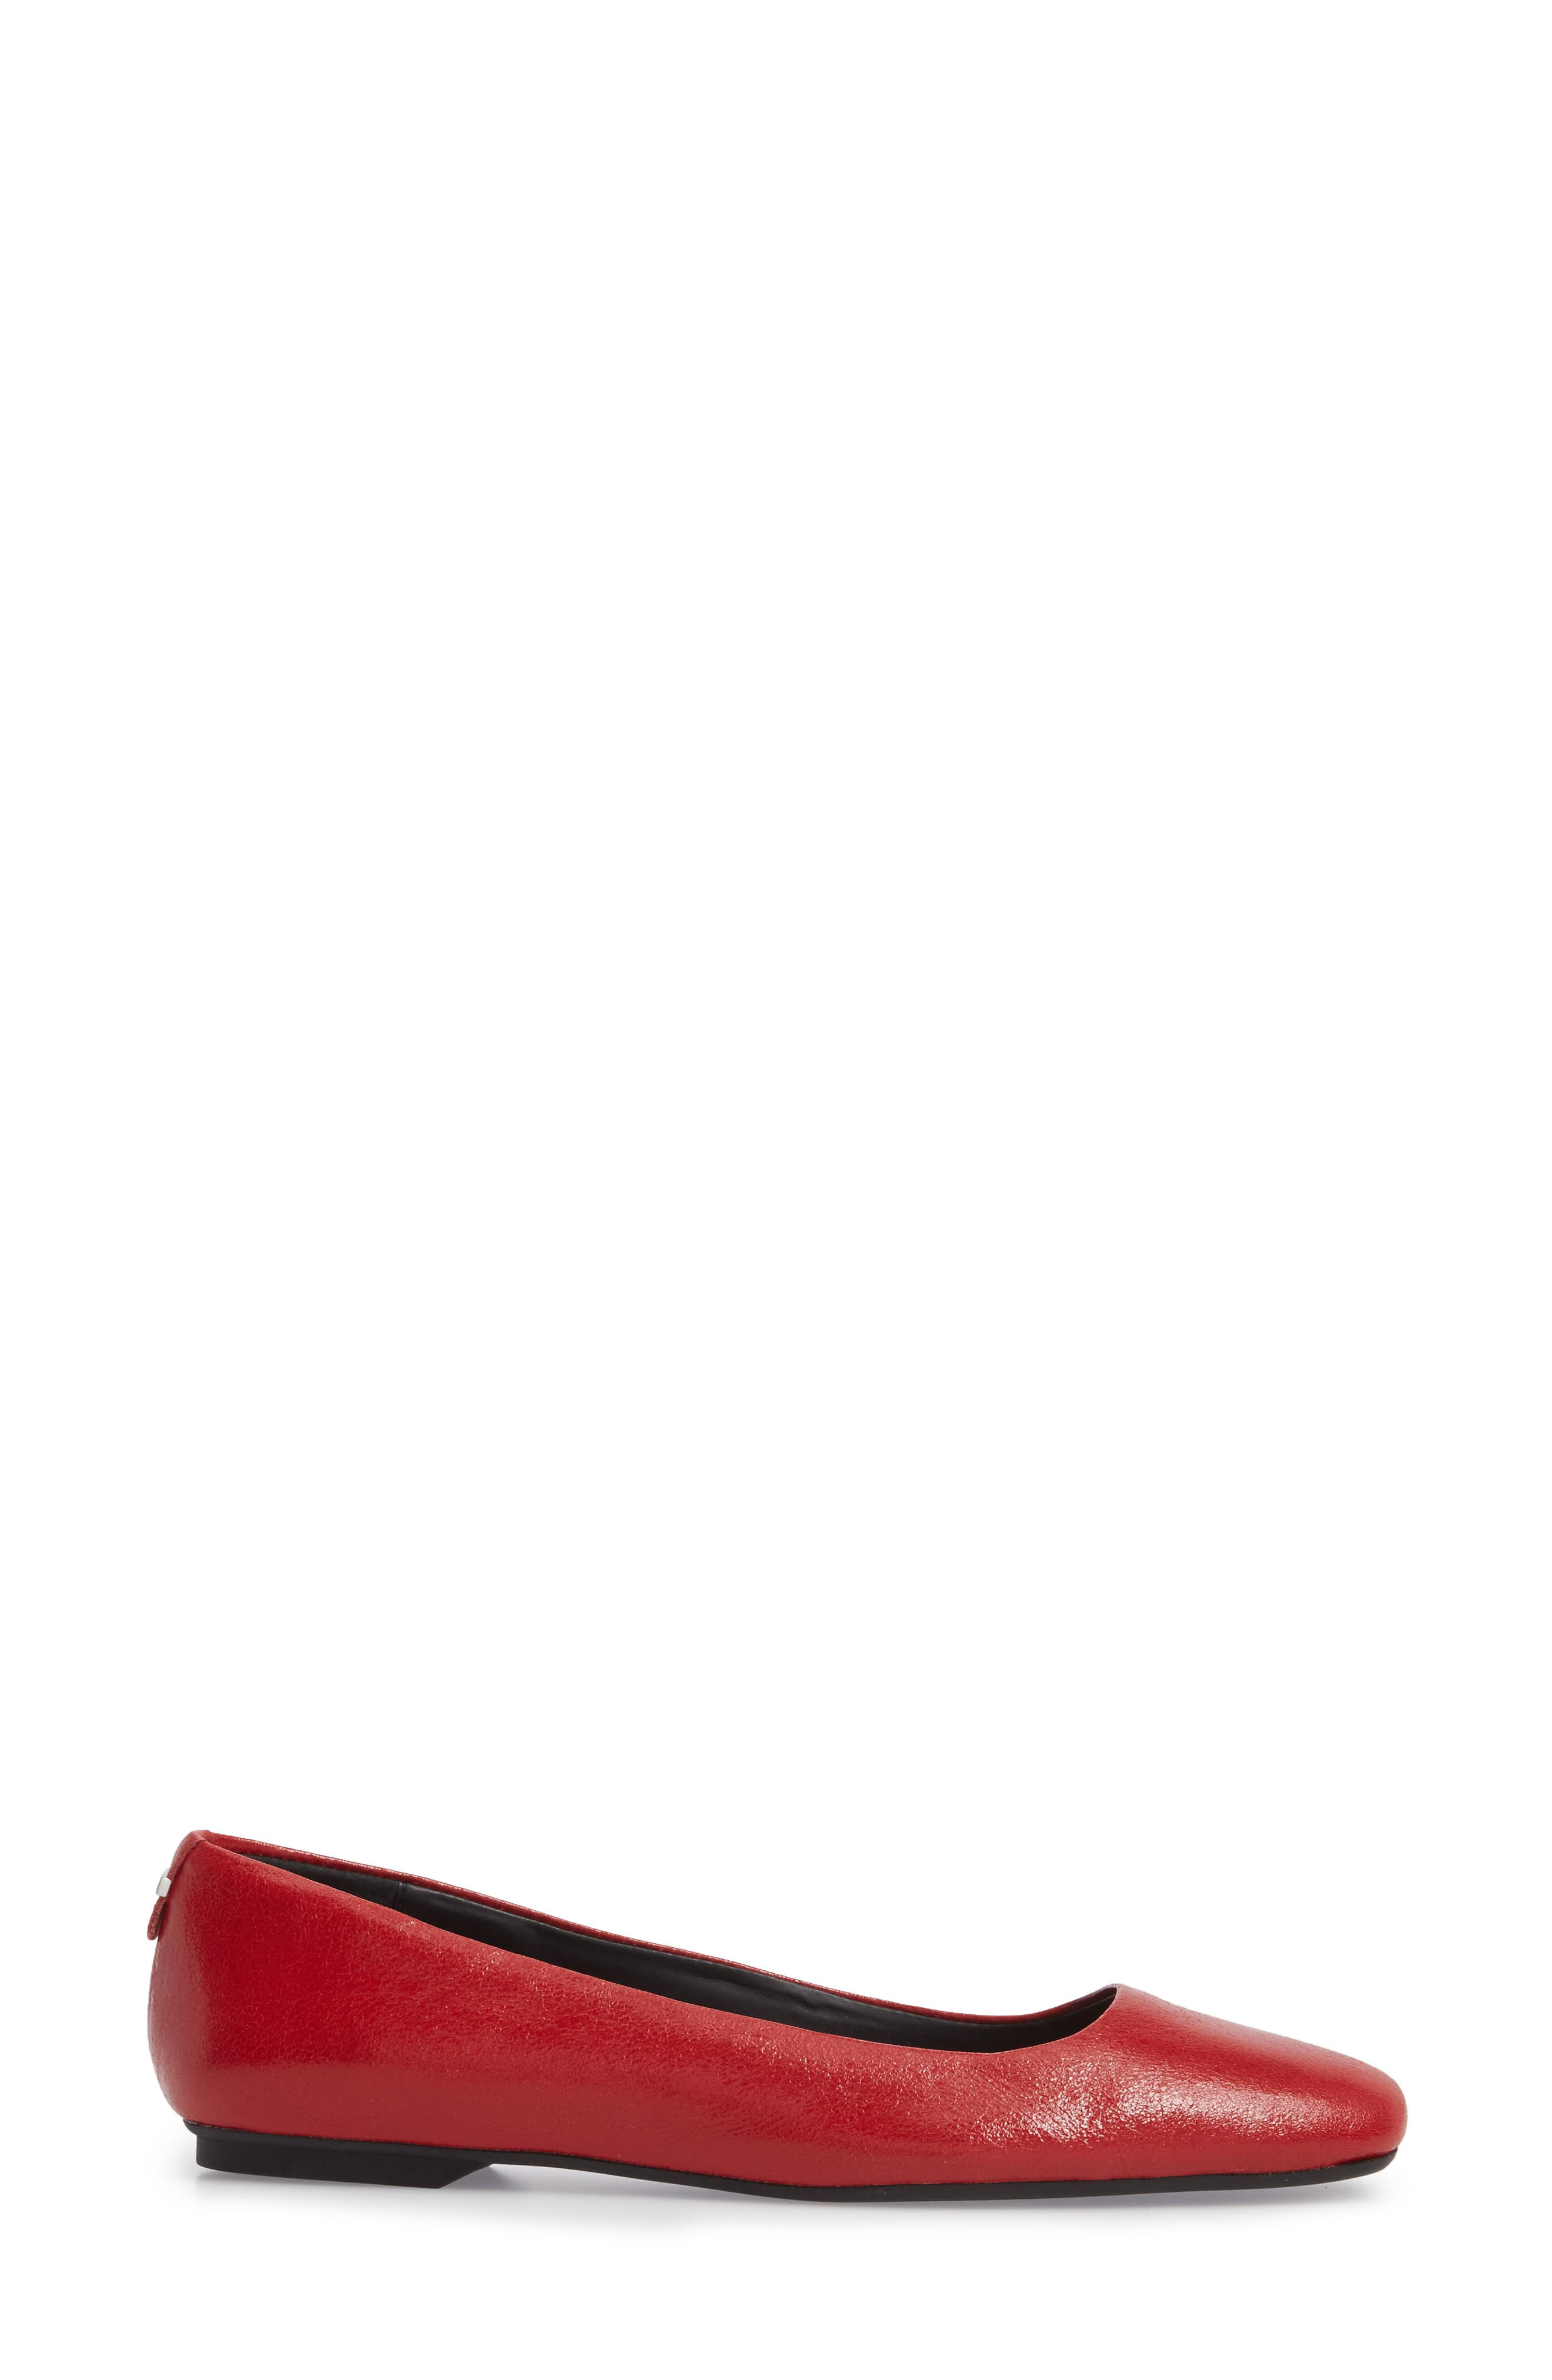 Enith Flat,                             Alternate thumbnail 3, color,                             Crimson Red Leather